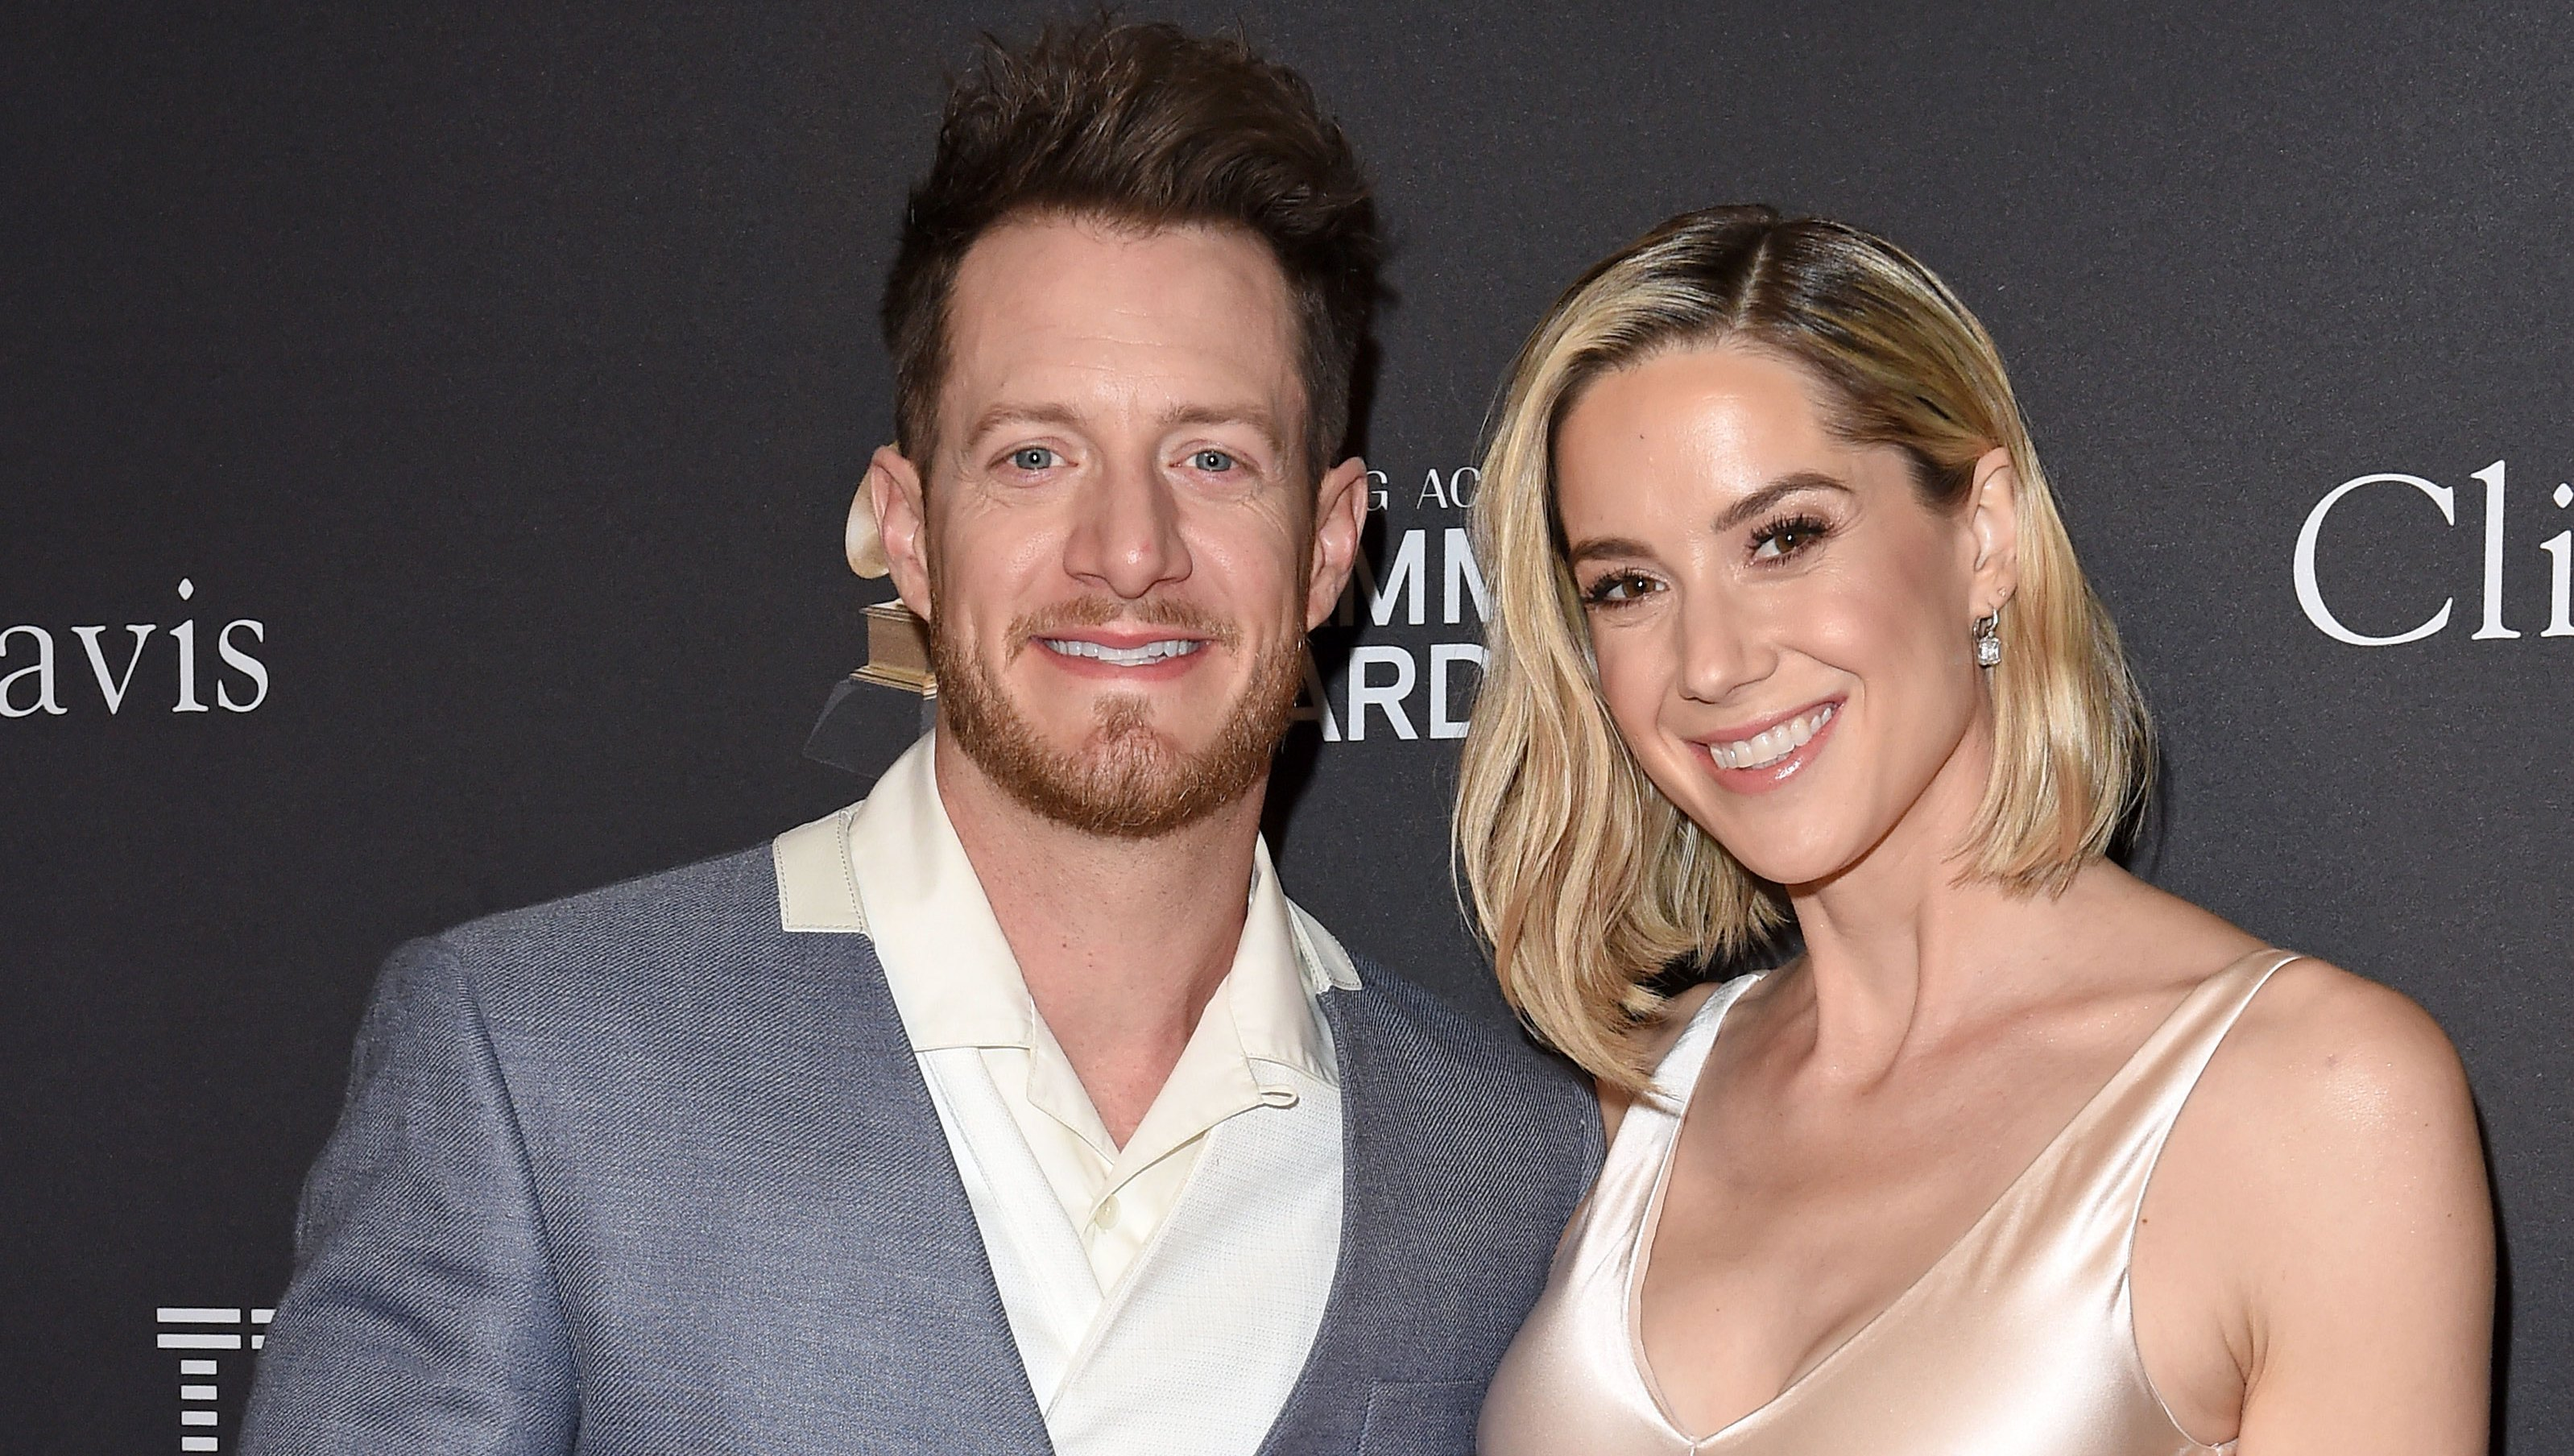 Florida Georgia Line's Tyler Hubbard and Wife Hayley Are Expecting Their Second Child